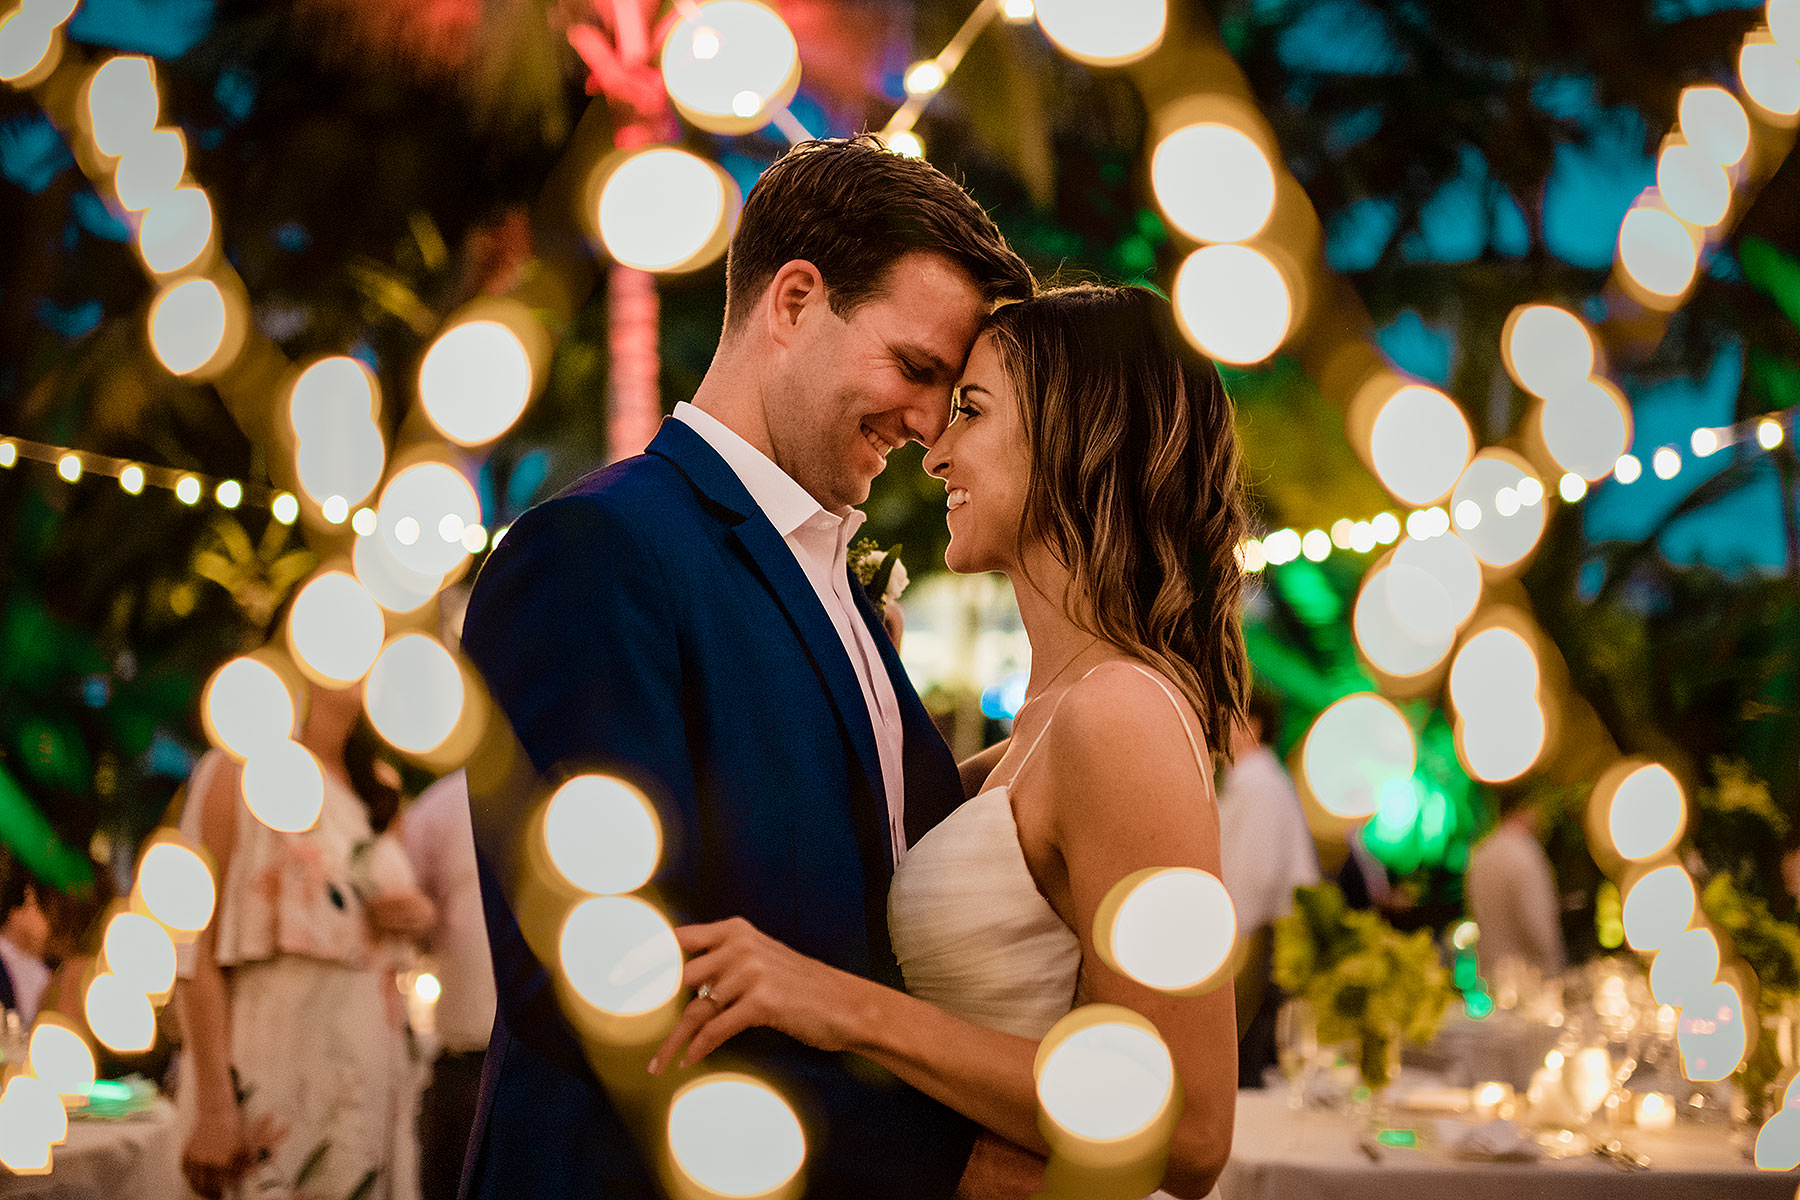 creative double exposure wedding photo of couple in the bahamas by outdoor reception bride and groom dance bahamas wedding by wedding guests dancing during outdoor wedding reception grand hyatt baha mar by bahamas wedding photographer adam mason